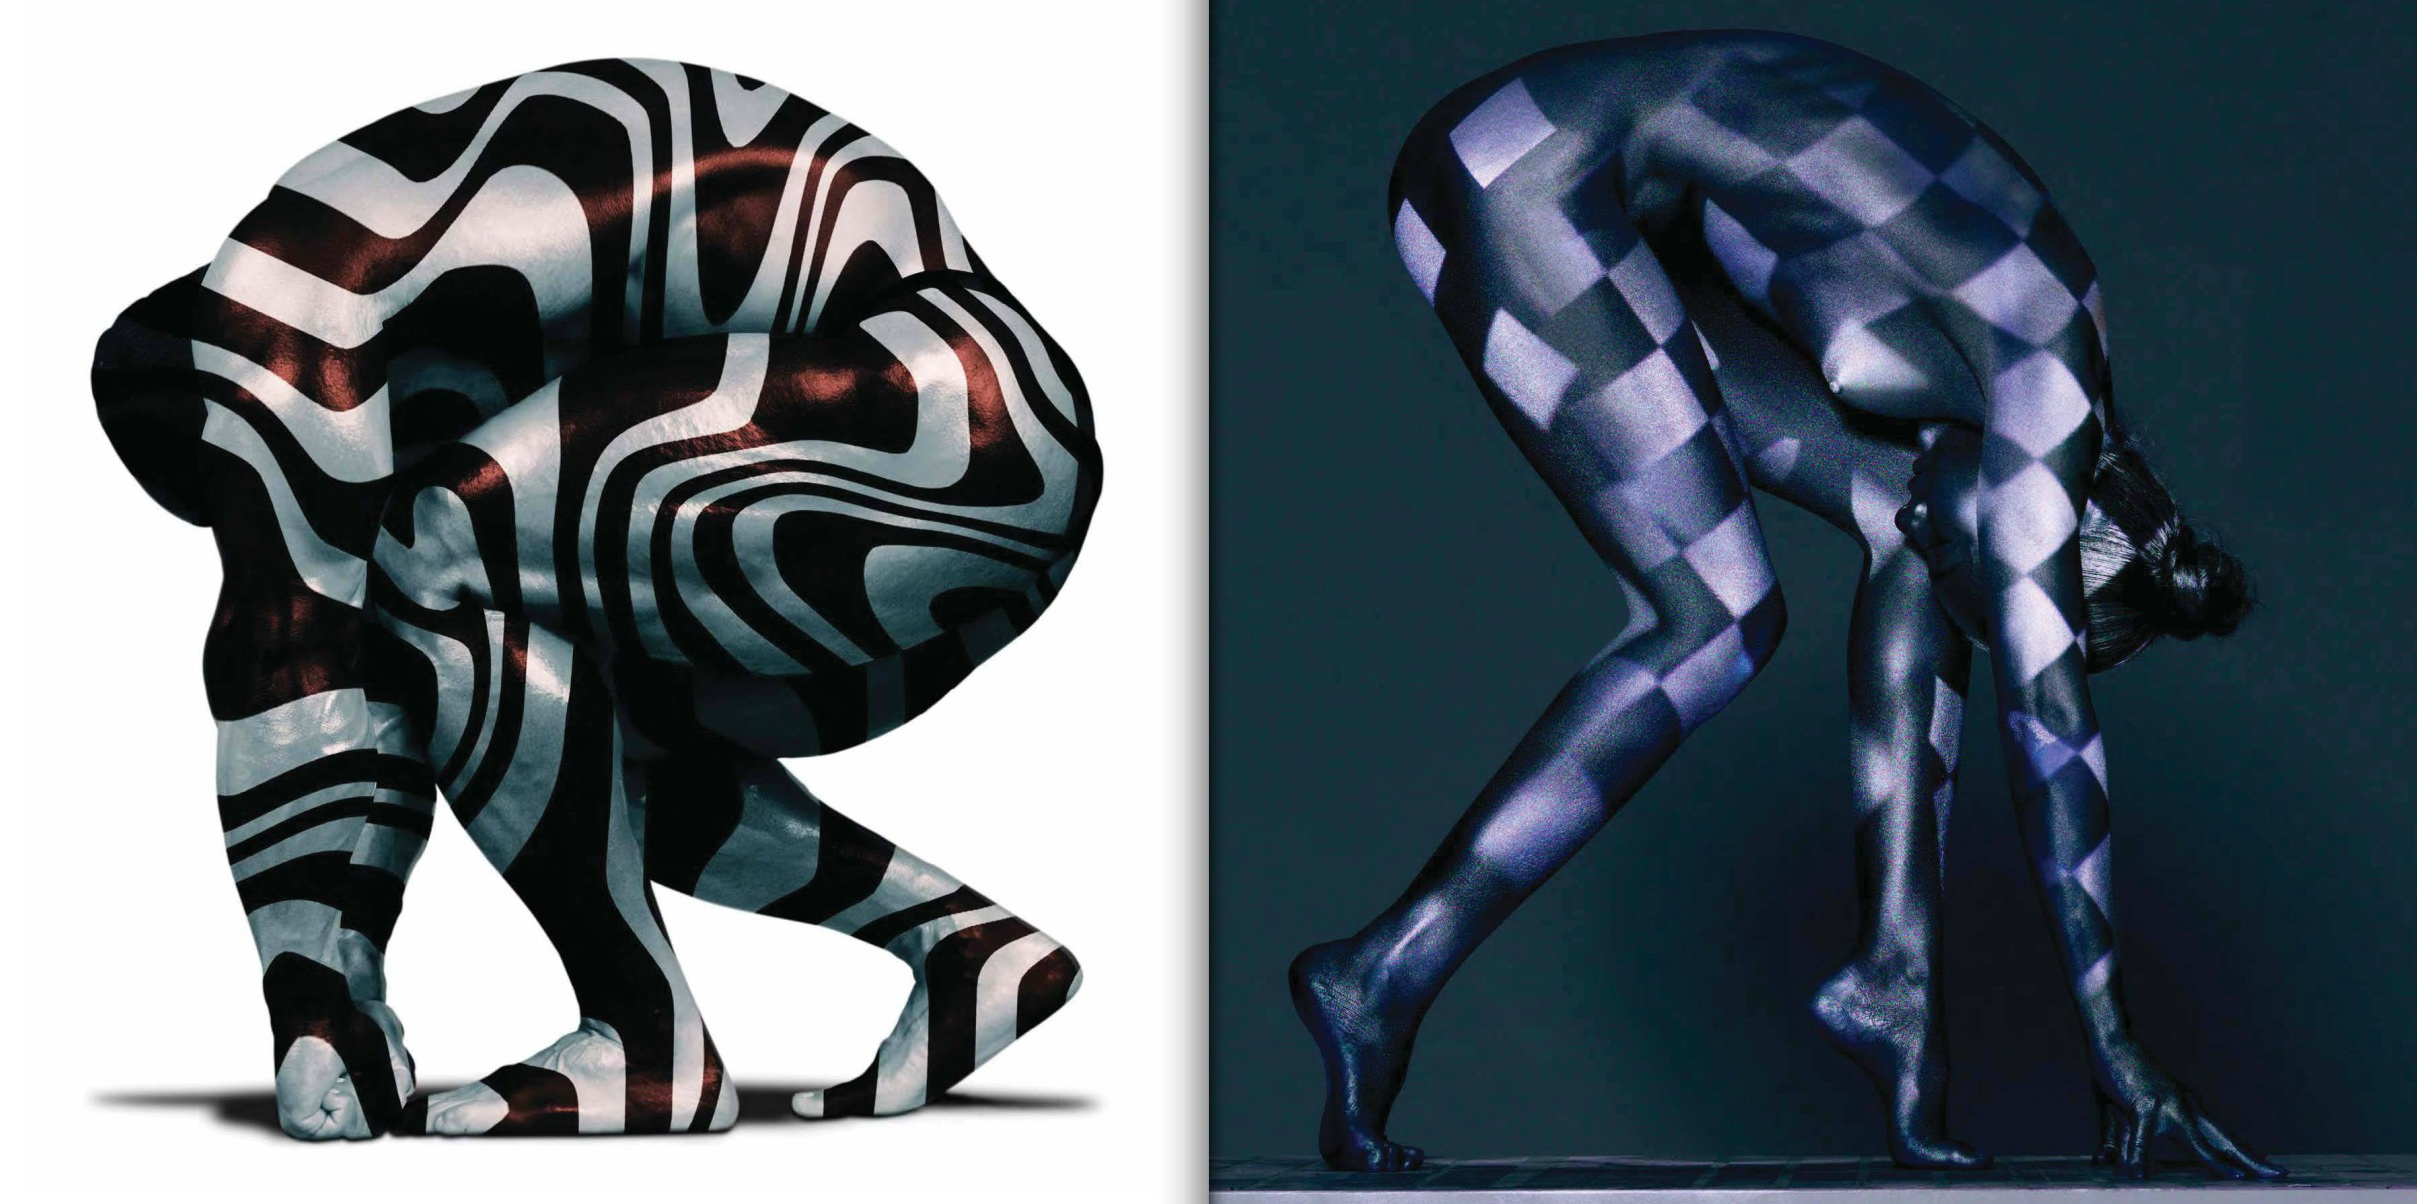 Left: King Kamali #7, bodybuilder, photographed in New York City, January 2001. Right: Beauty Study #1353, Melissa, photographed in New York City, April 2013.  © Howard Schatz and Beverly Ornstein